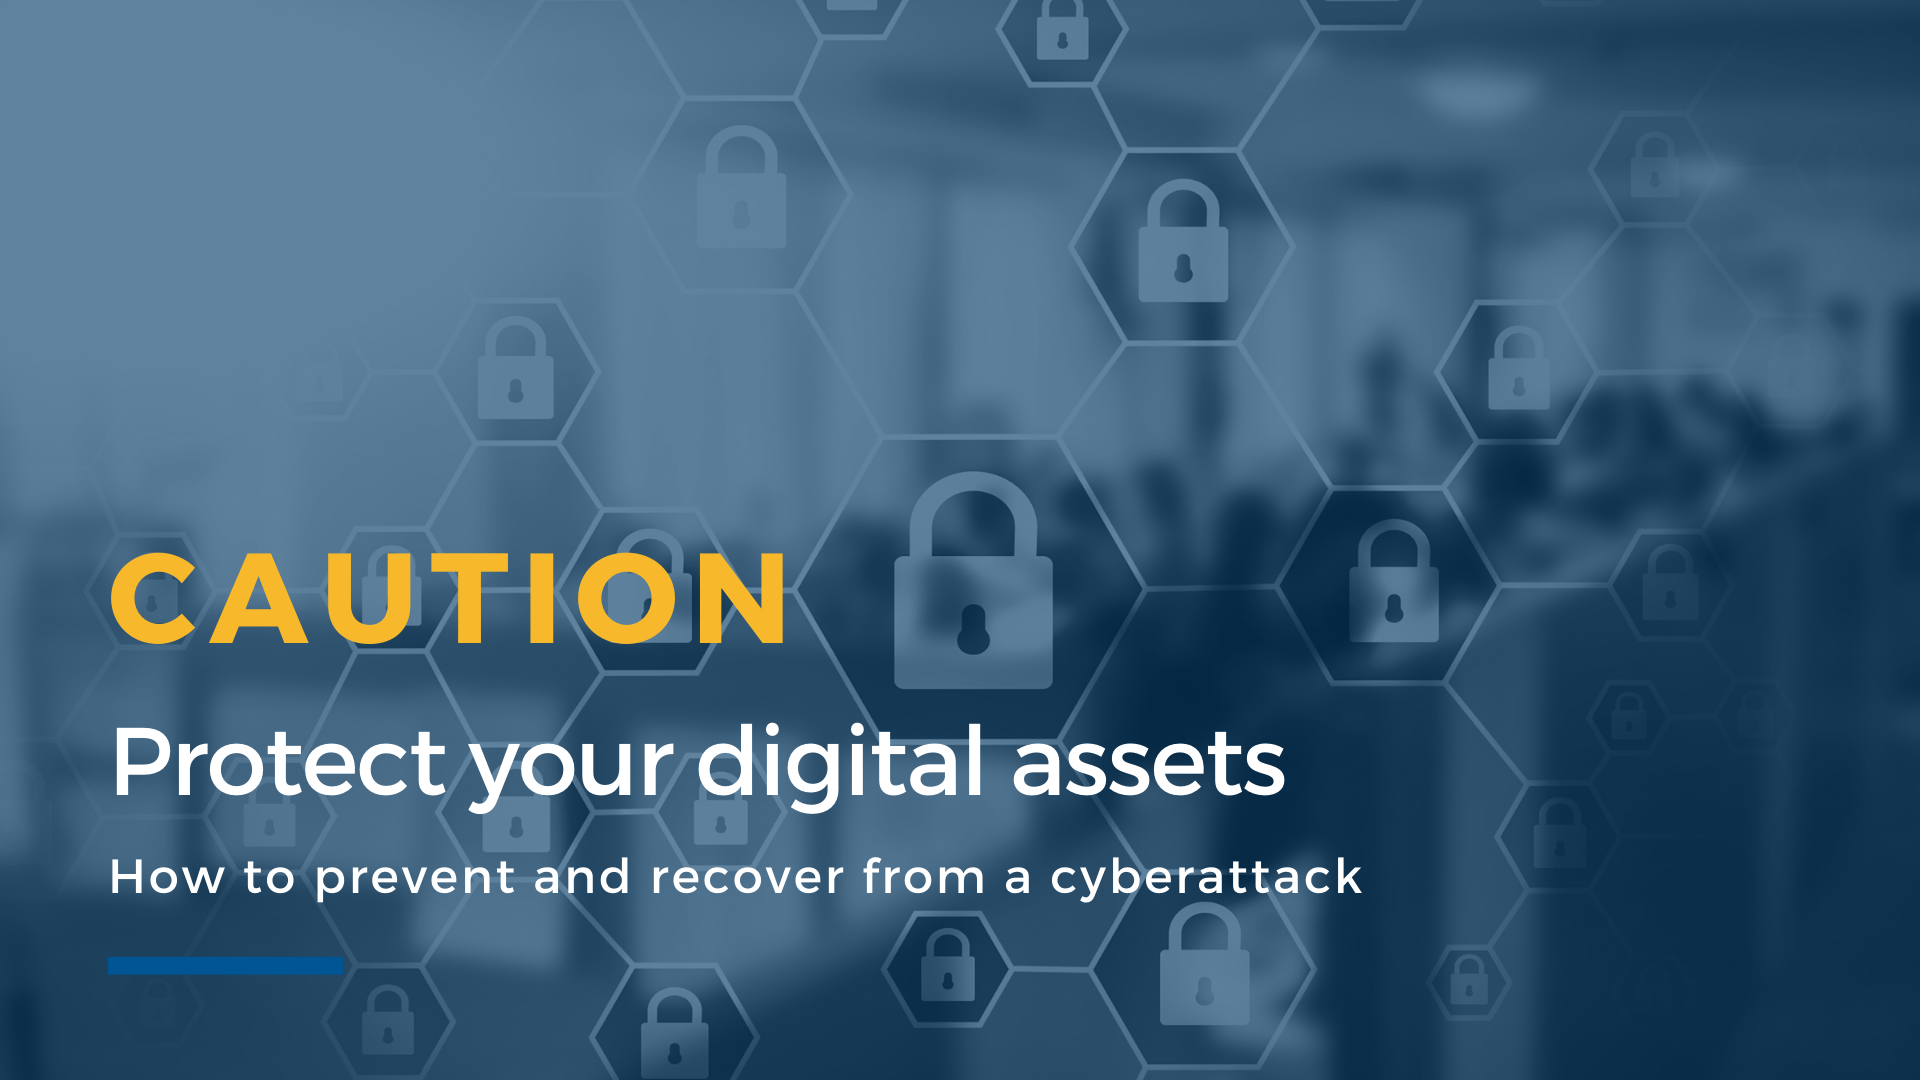 Are you in danger of a data breach? it's time to protect you digital assets